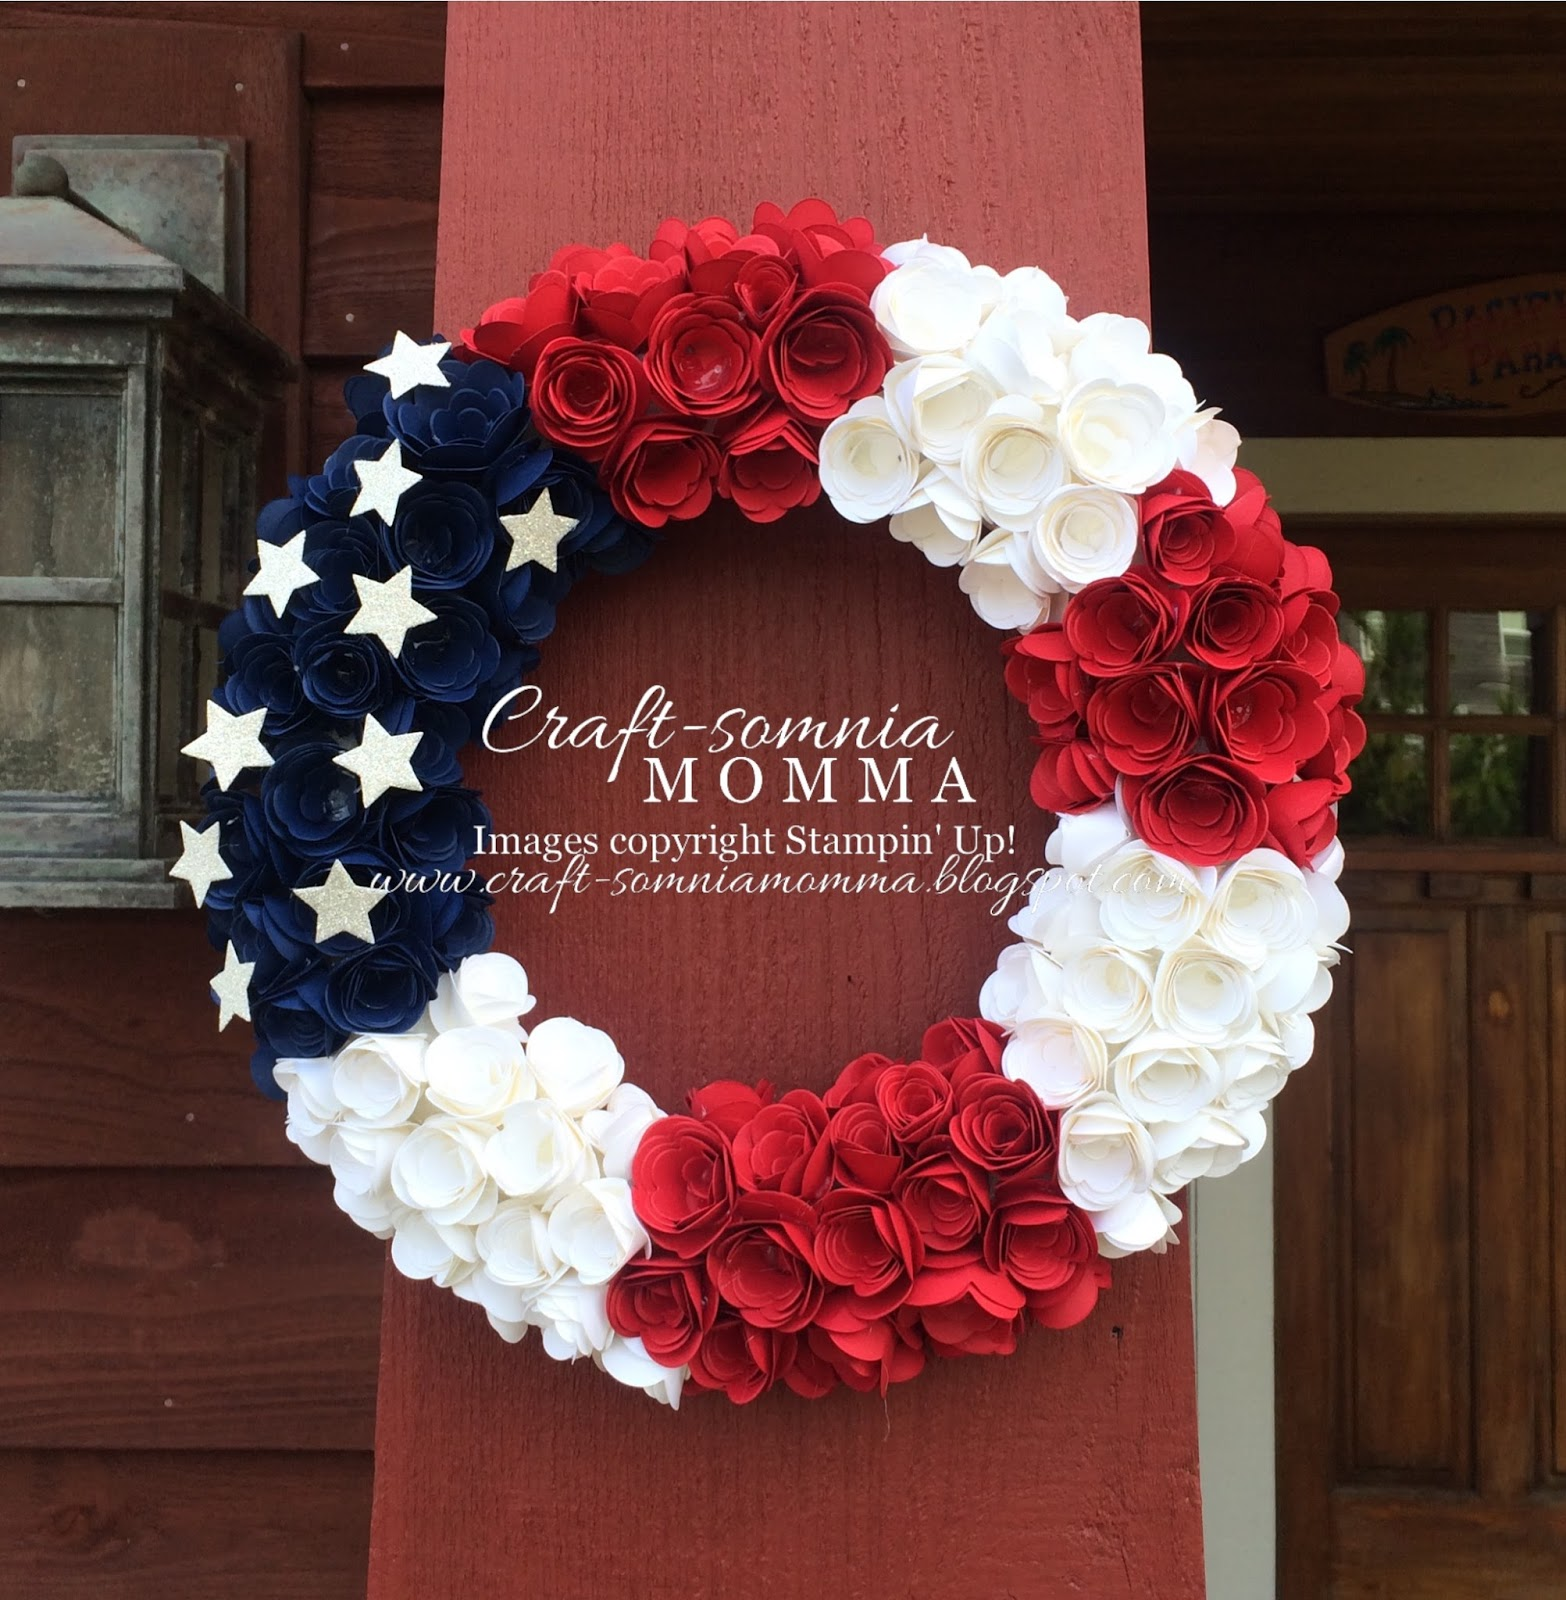 Craft somnia momma 4th of july wreath of roses tuesday june 23 2015 mightylinksfo